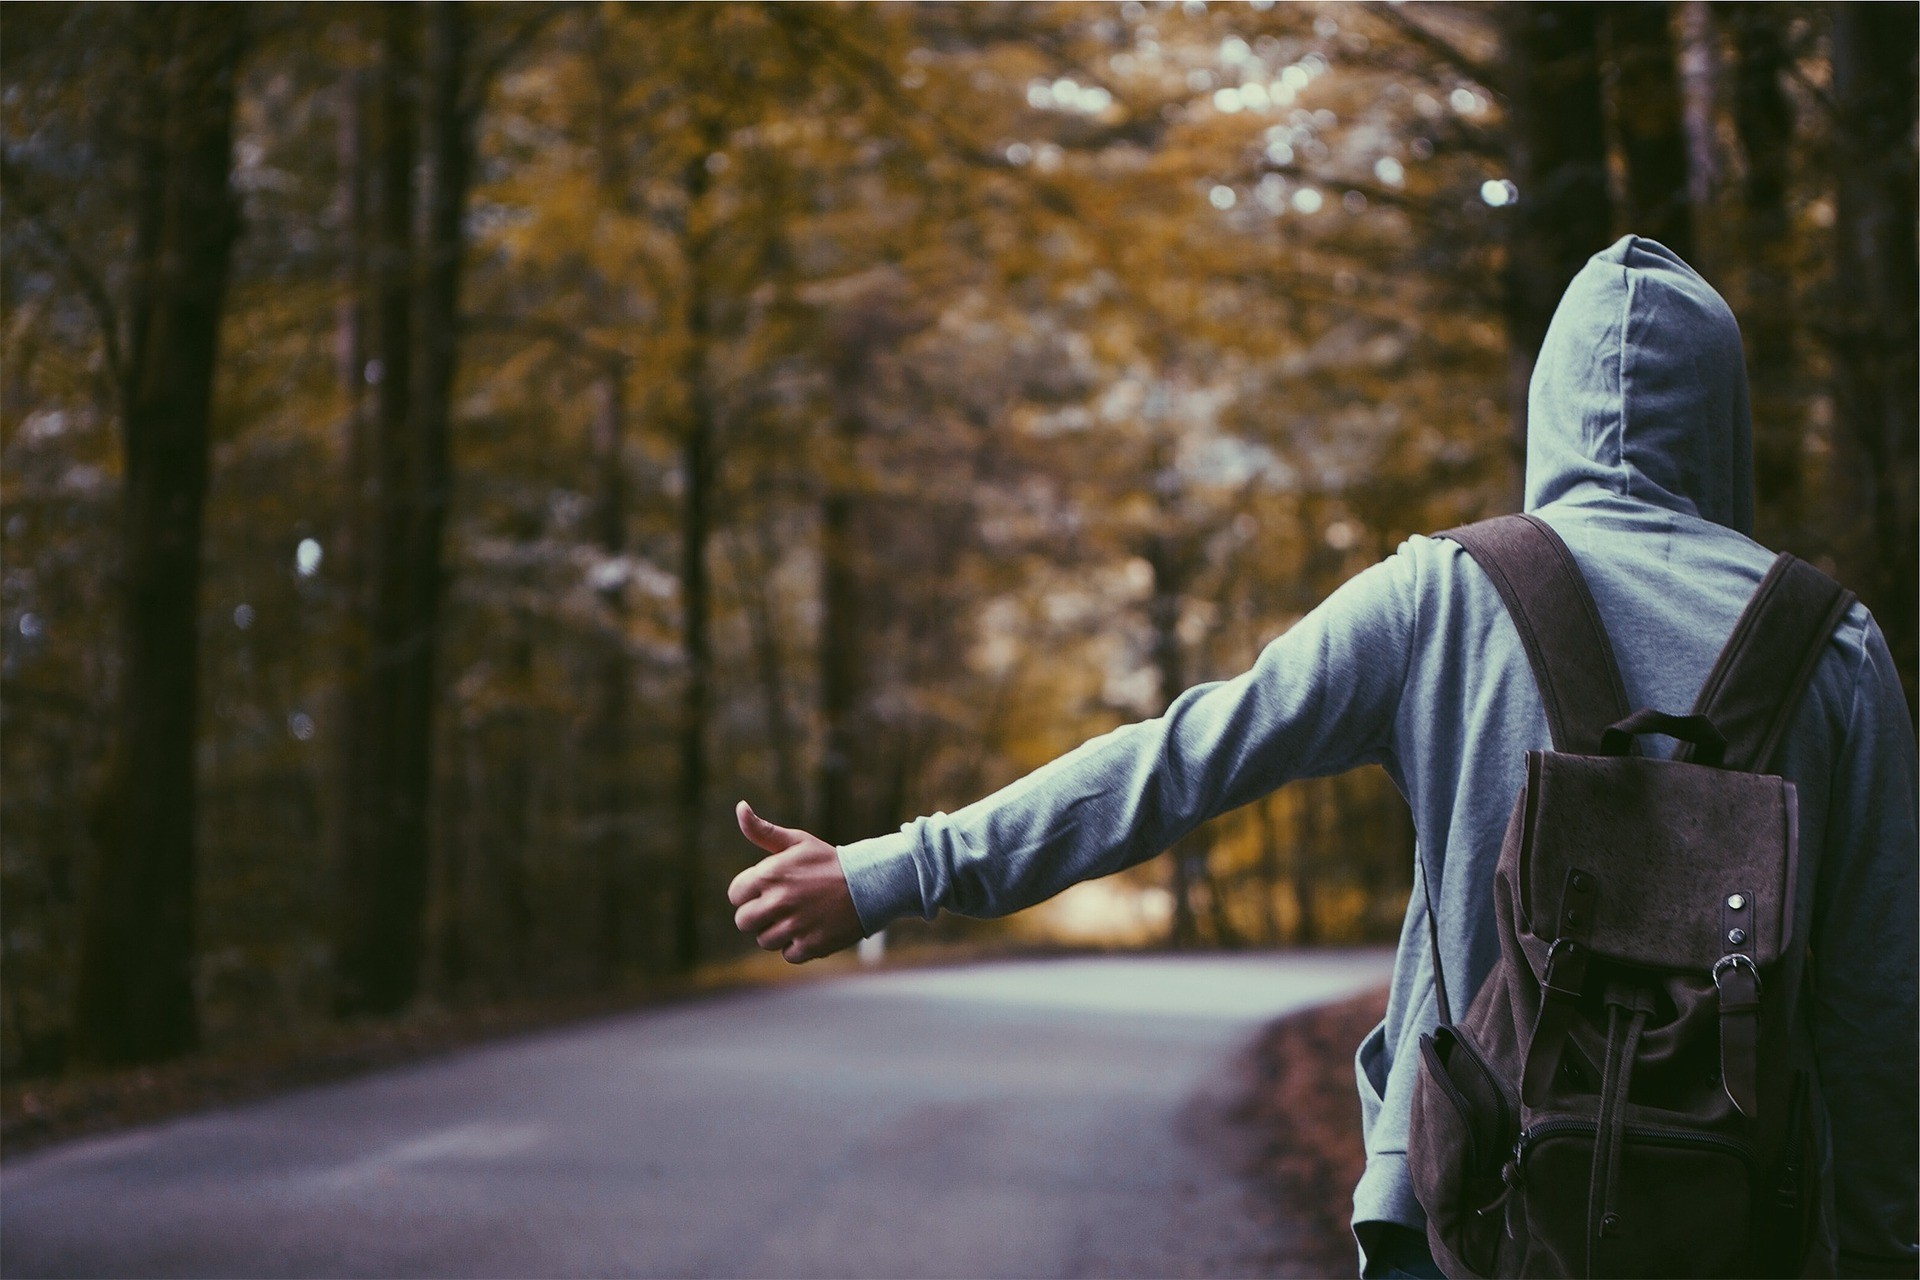 hitchhiker with backpack